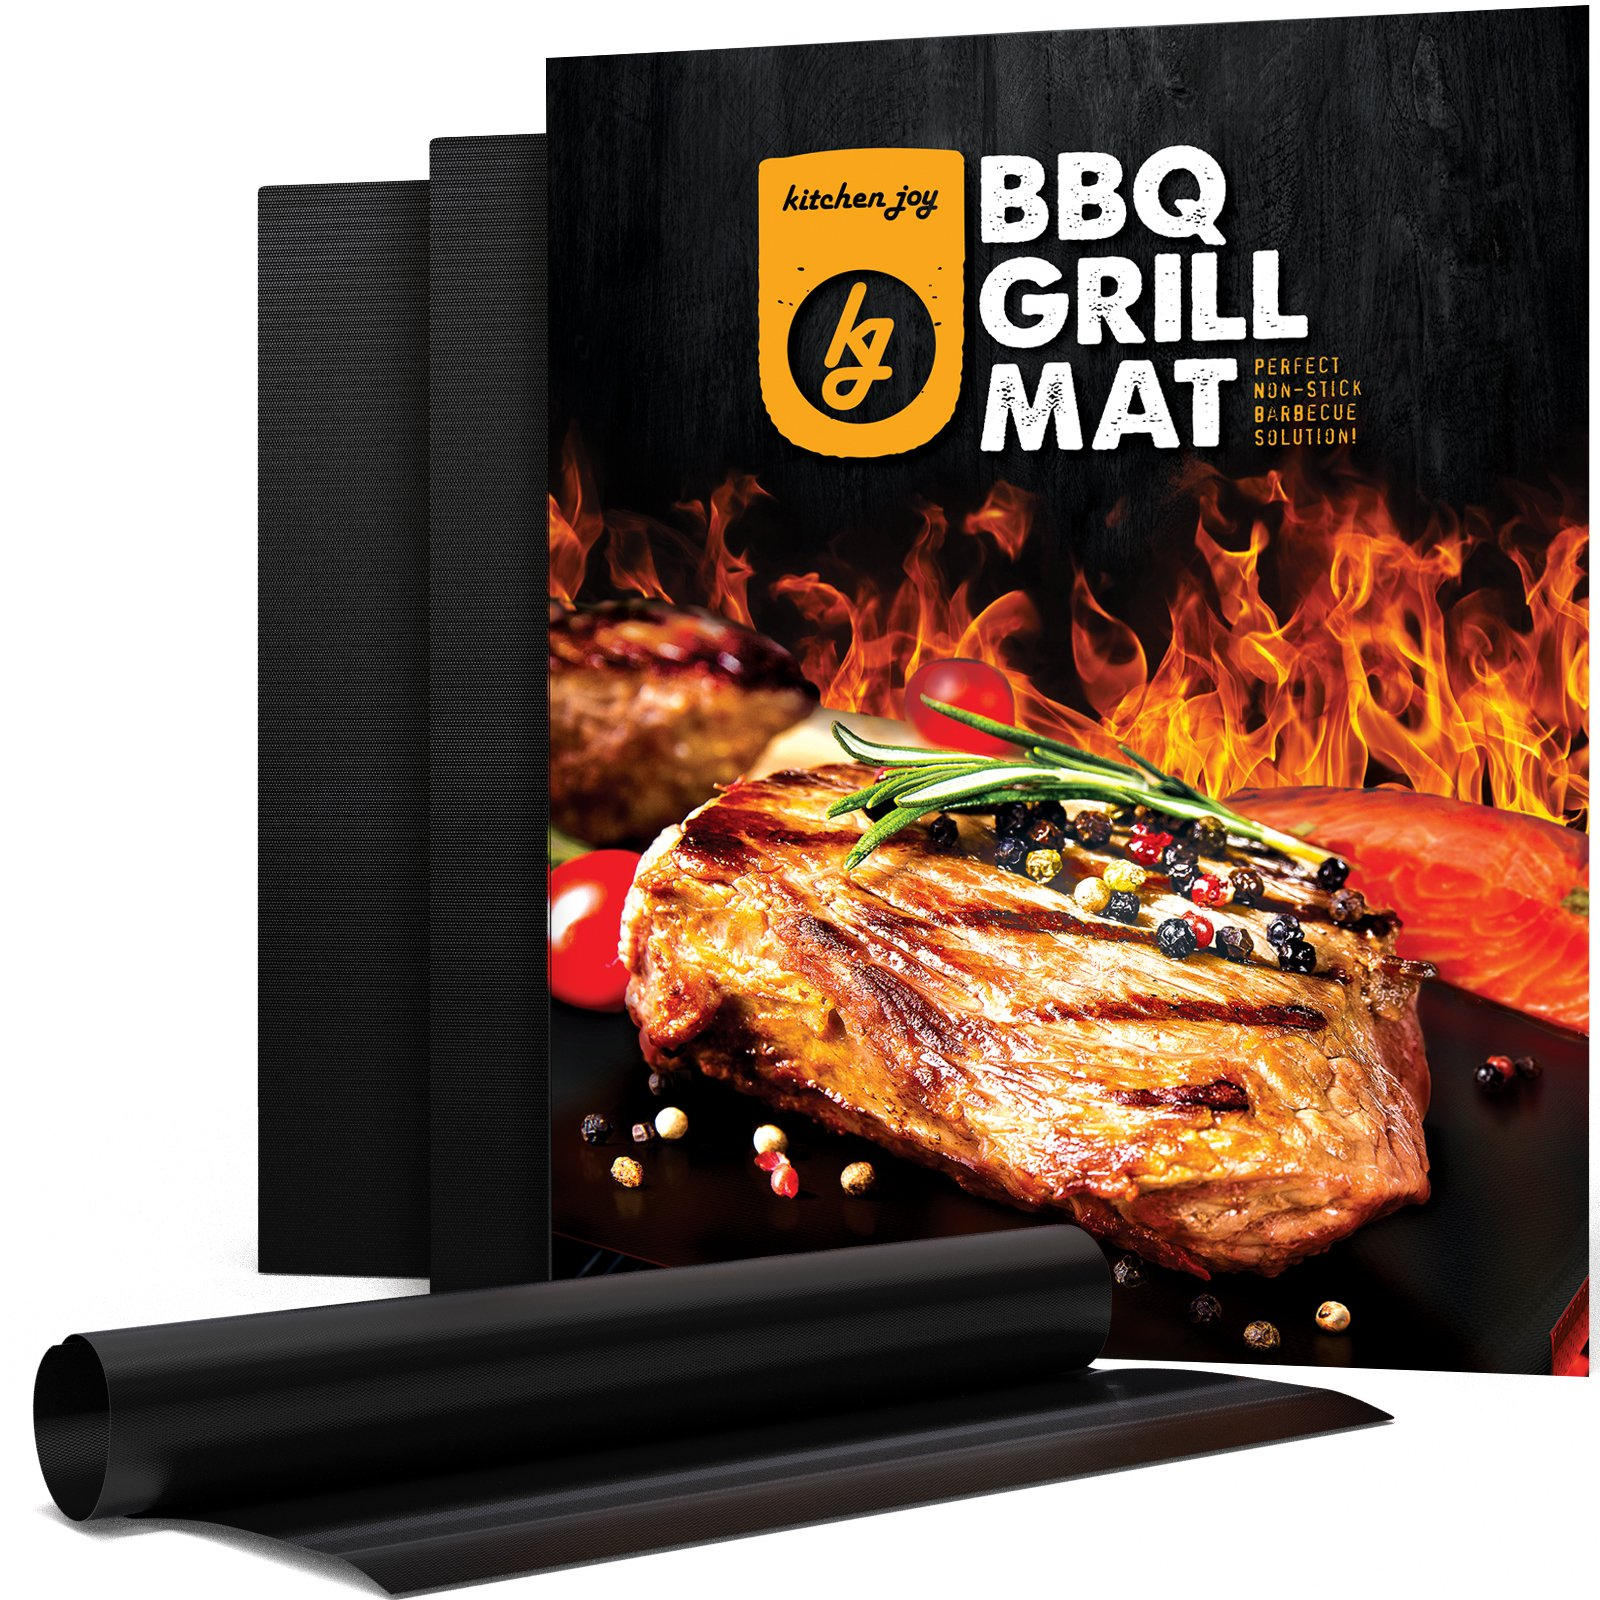 Kitchen Joy BBQ Grill Mat, Set of 3 Non-Stick Grill Mats, Barbecue Utensil for Gas, Charcoal, Electric Grill